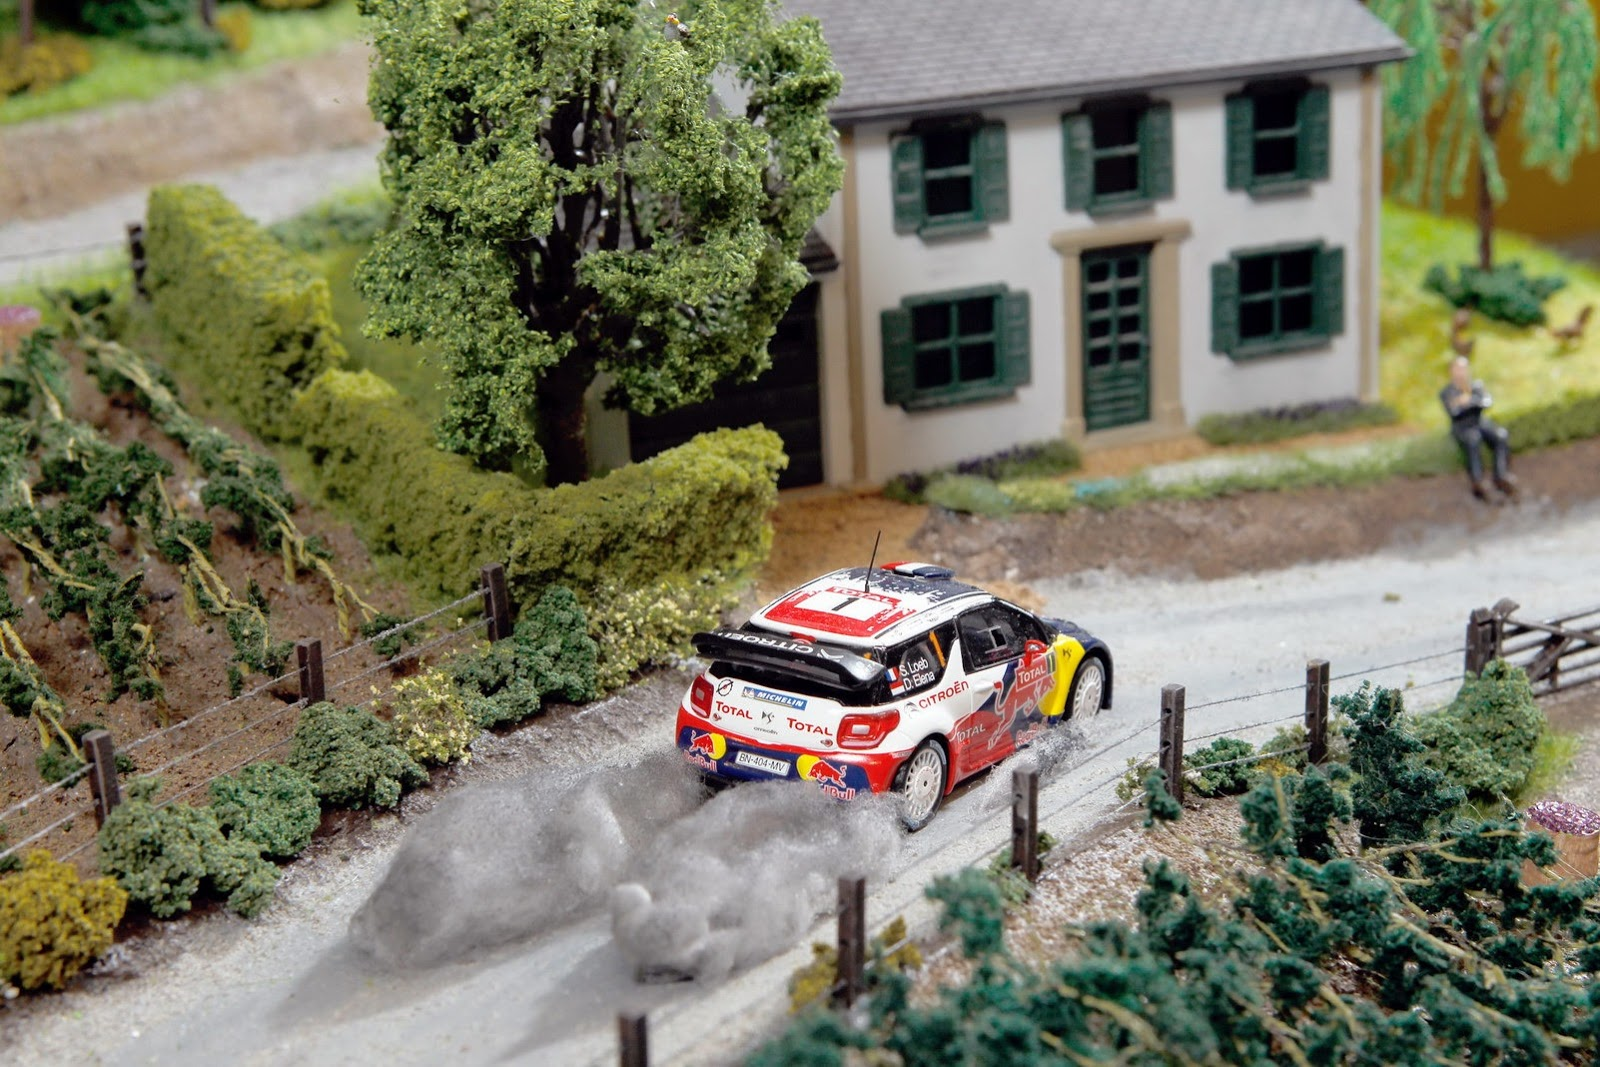 Zanimljive slike - Page 2 Citroen-celebrates-rally-success-with-impressive-diorama-on-top-of-a-ds3-photo-gallery_9